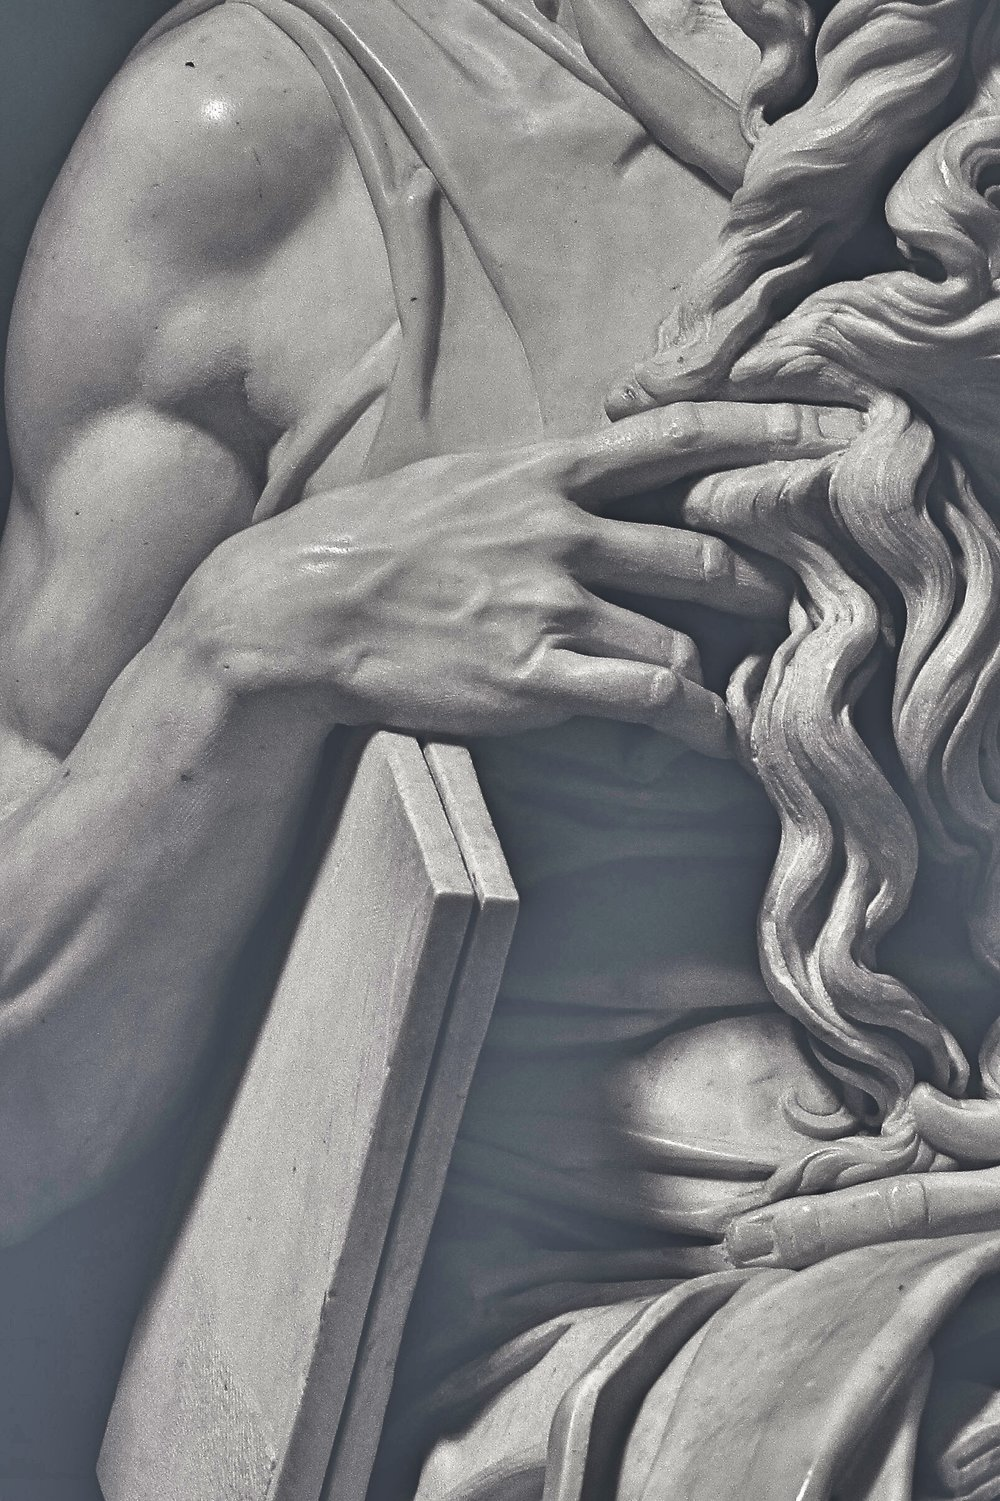 Inspiration-Michelangelo-Moses-08.jpg